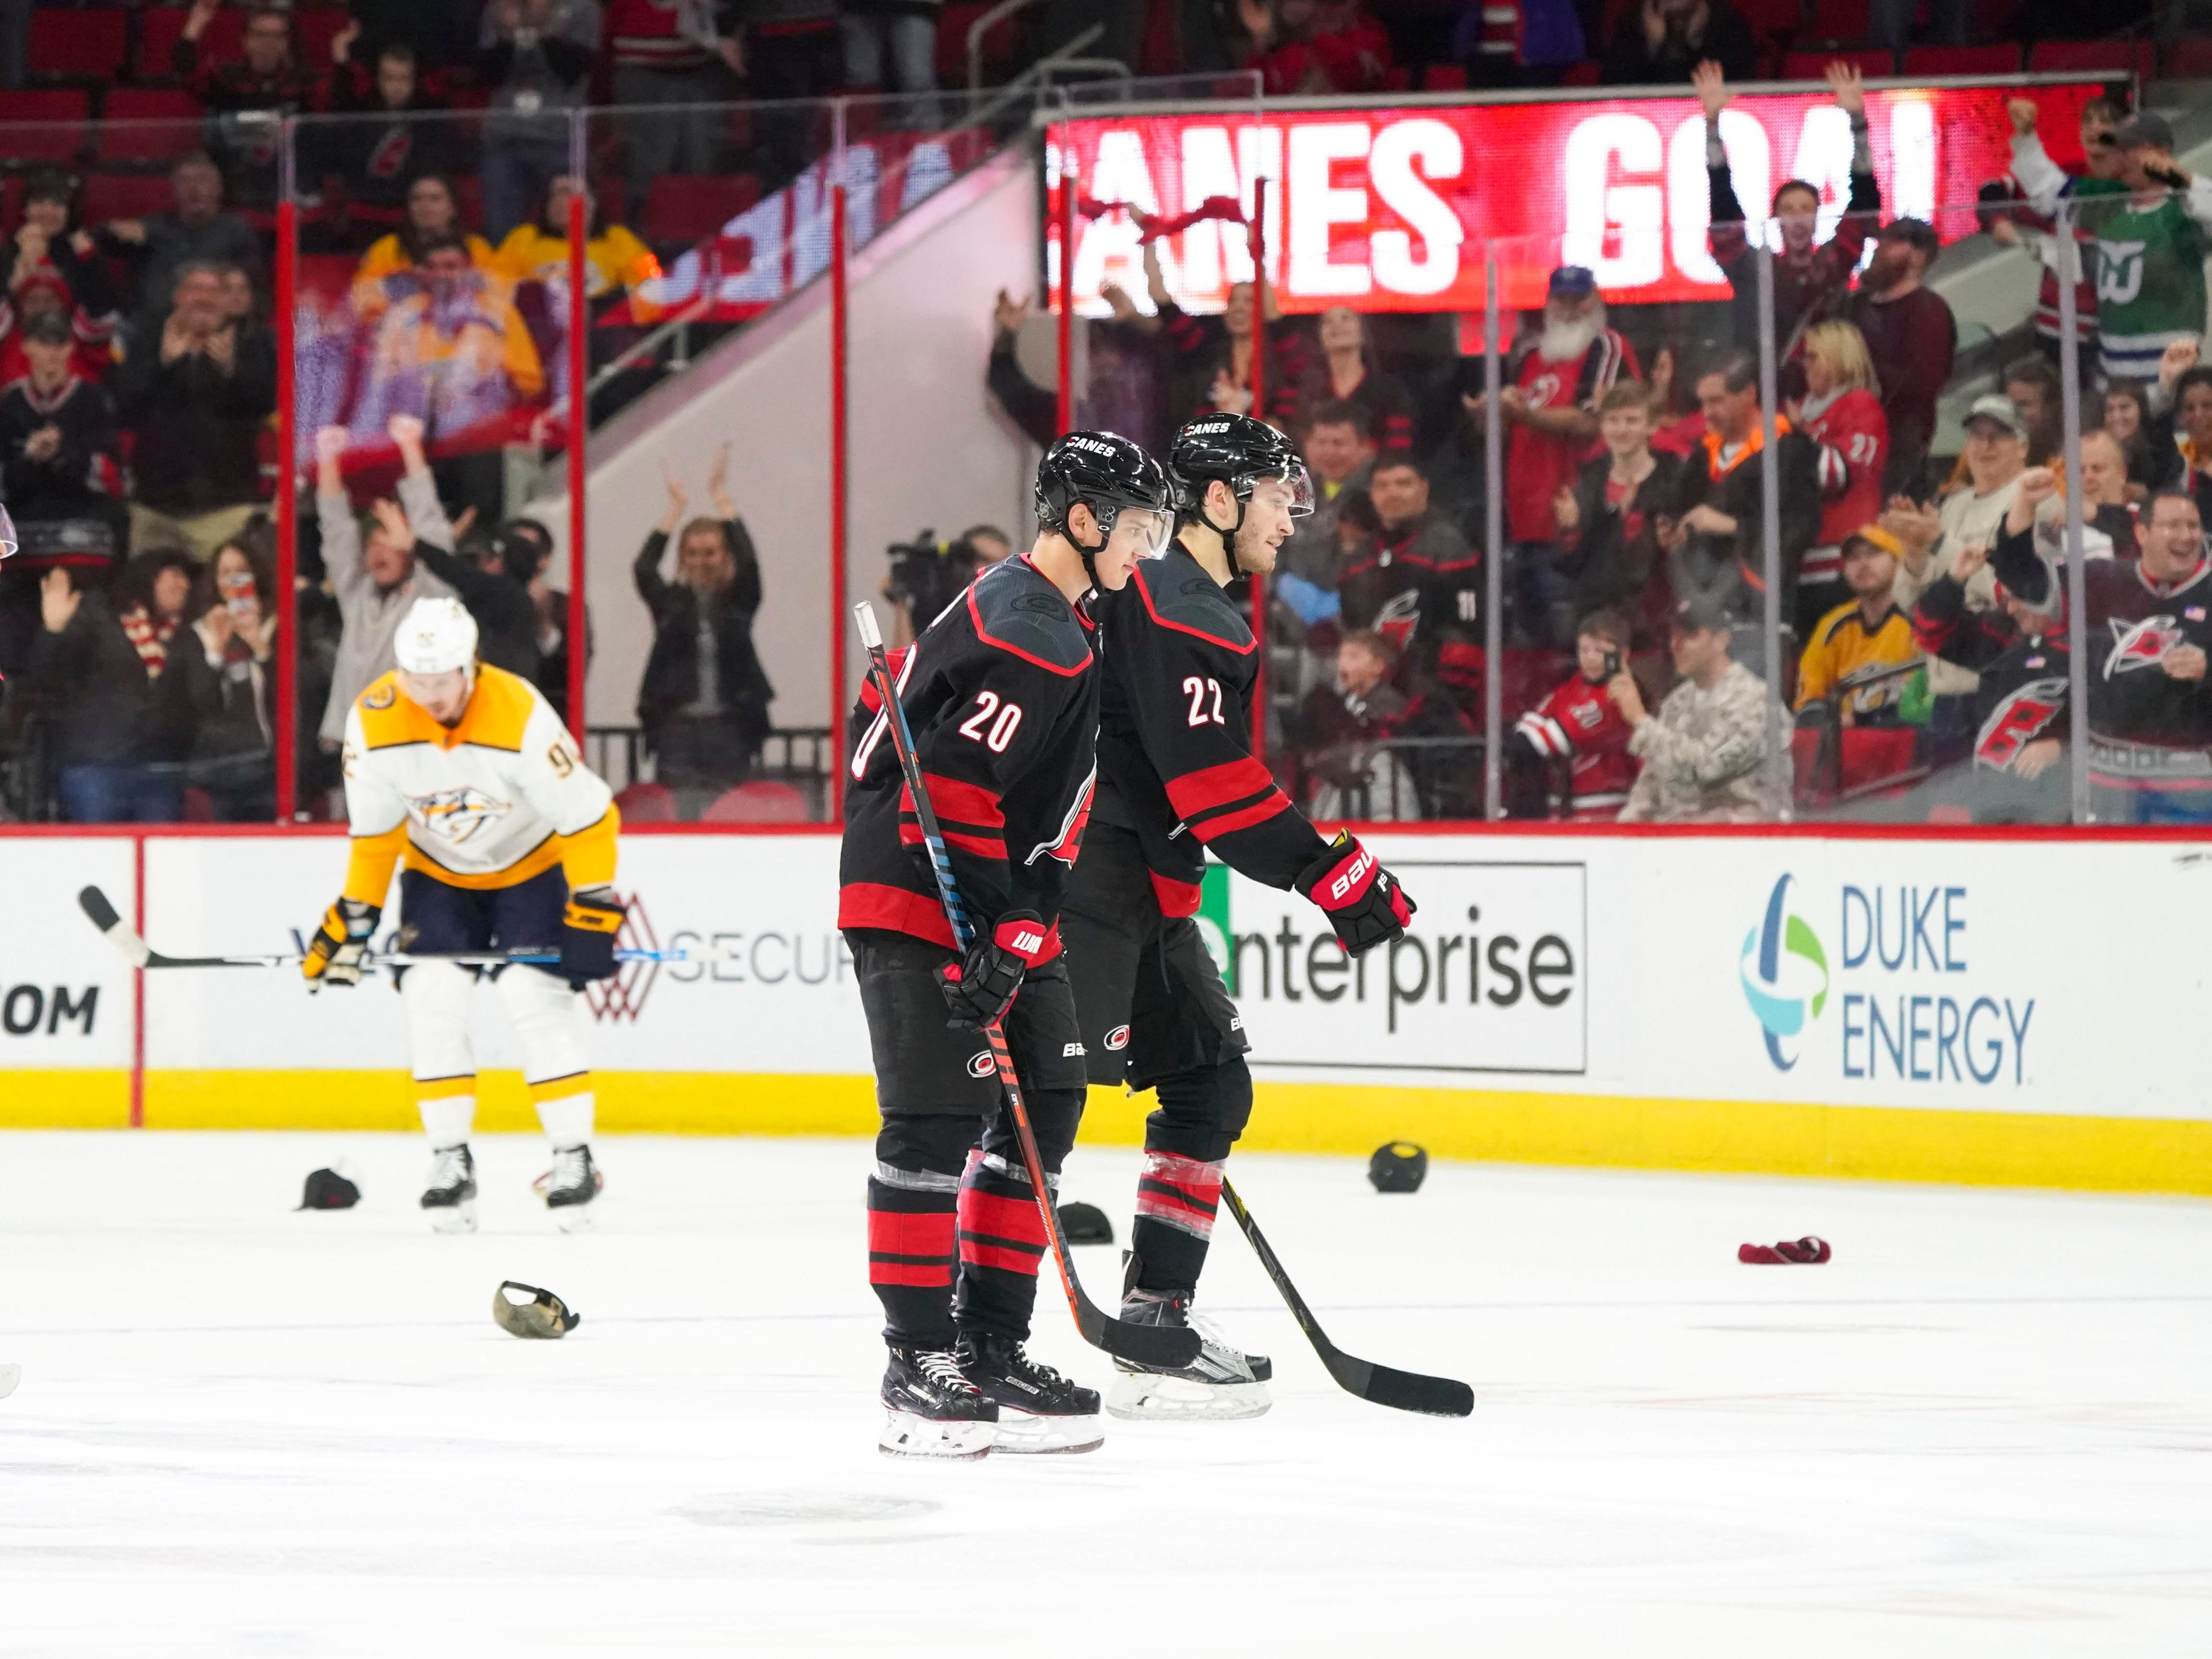 Jan. 13: Carolina Hurricanes forward Sebastian Aho (20) skates past hats  after he scores his third goal against the Nashville Predators. He scored at even strength, on the power play and while his team was short-handed.